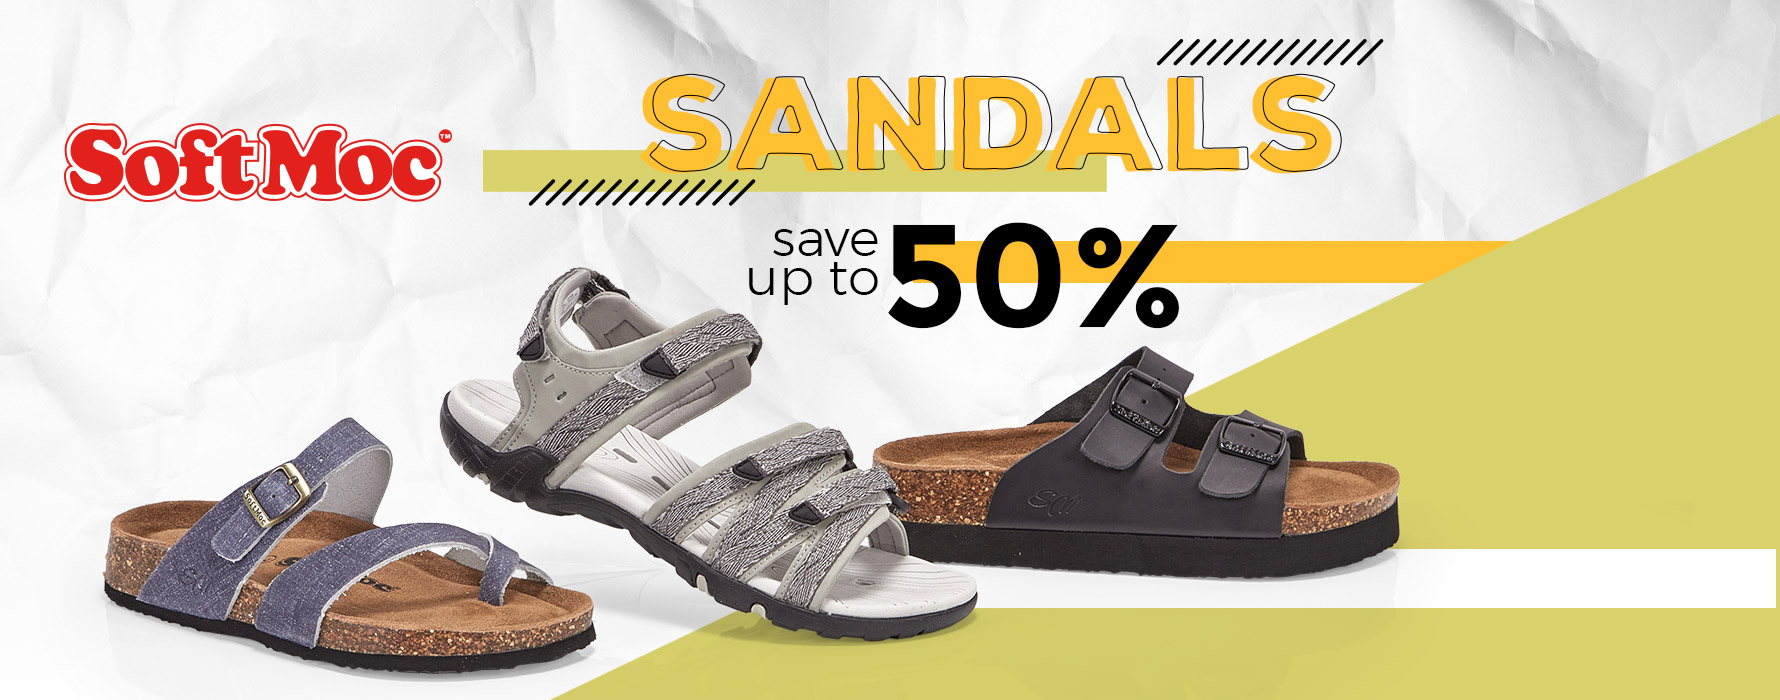 SoftMoc Sandals - Save up to 50%!